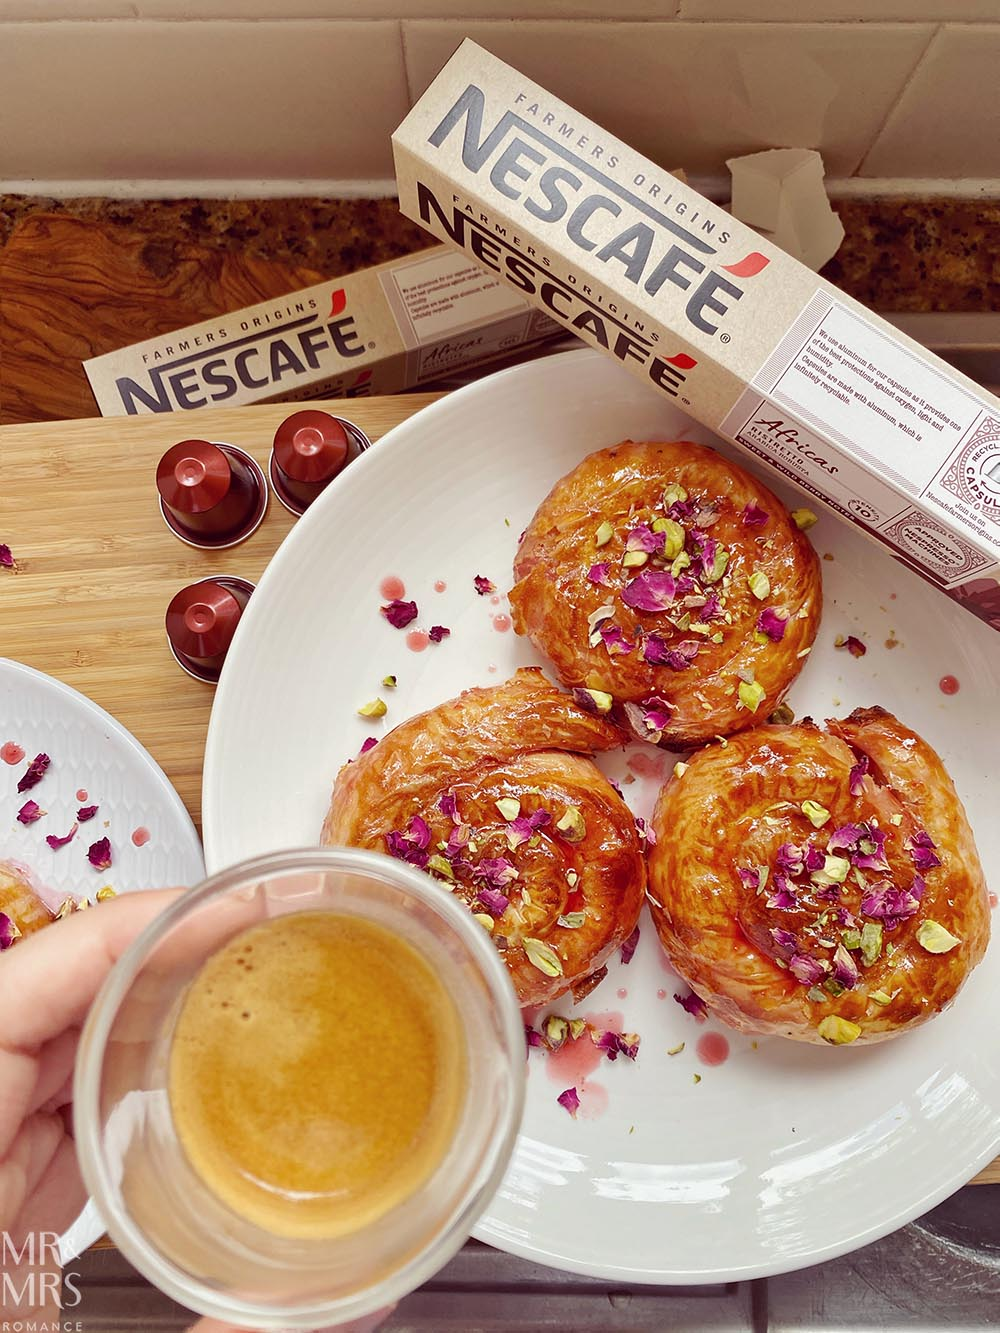 North African pastry recipe - Nescafe capsule coffee